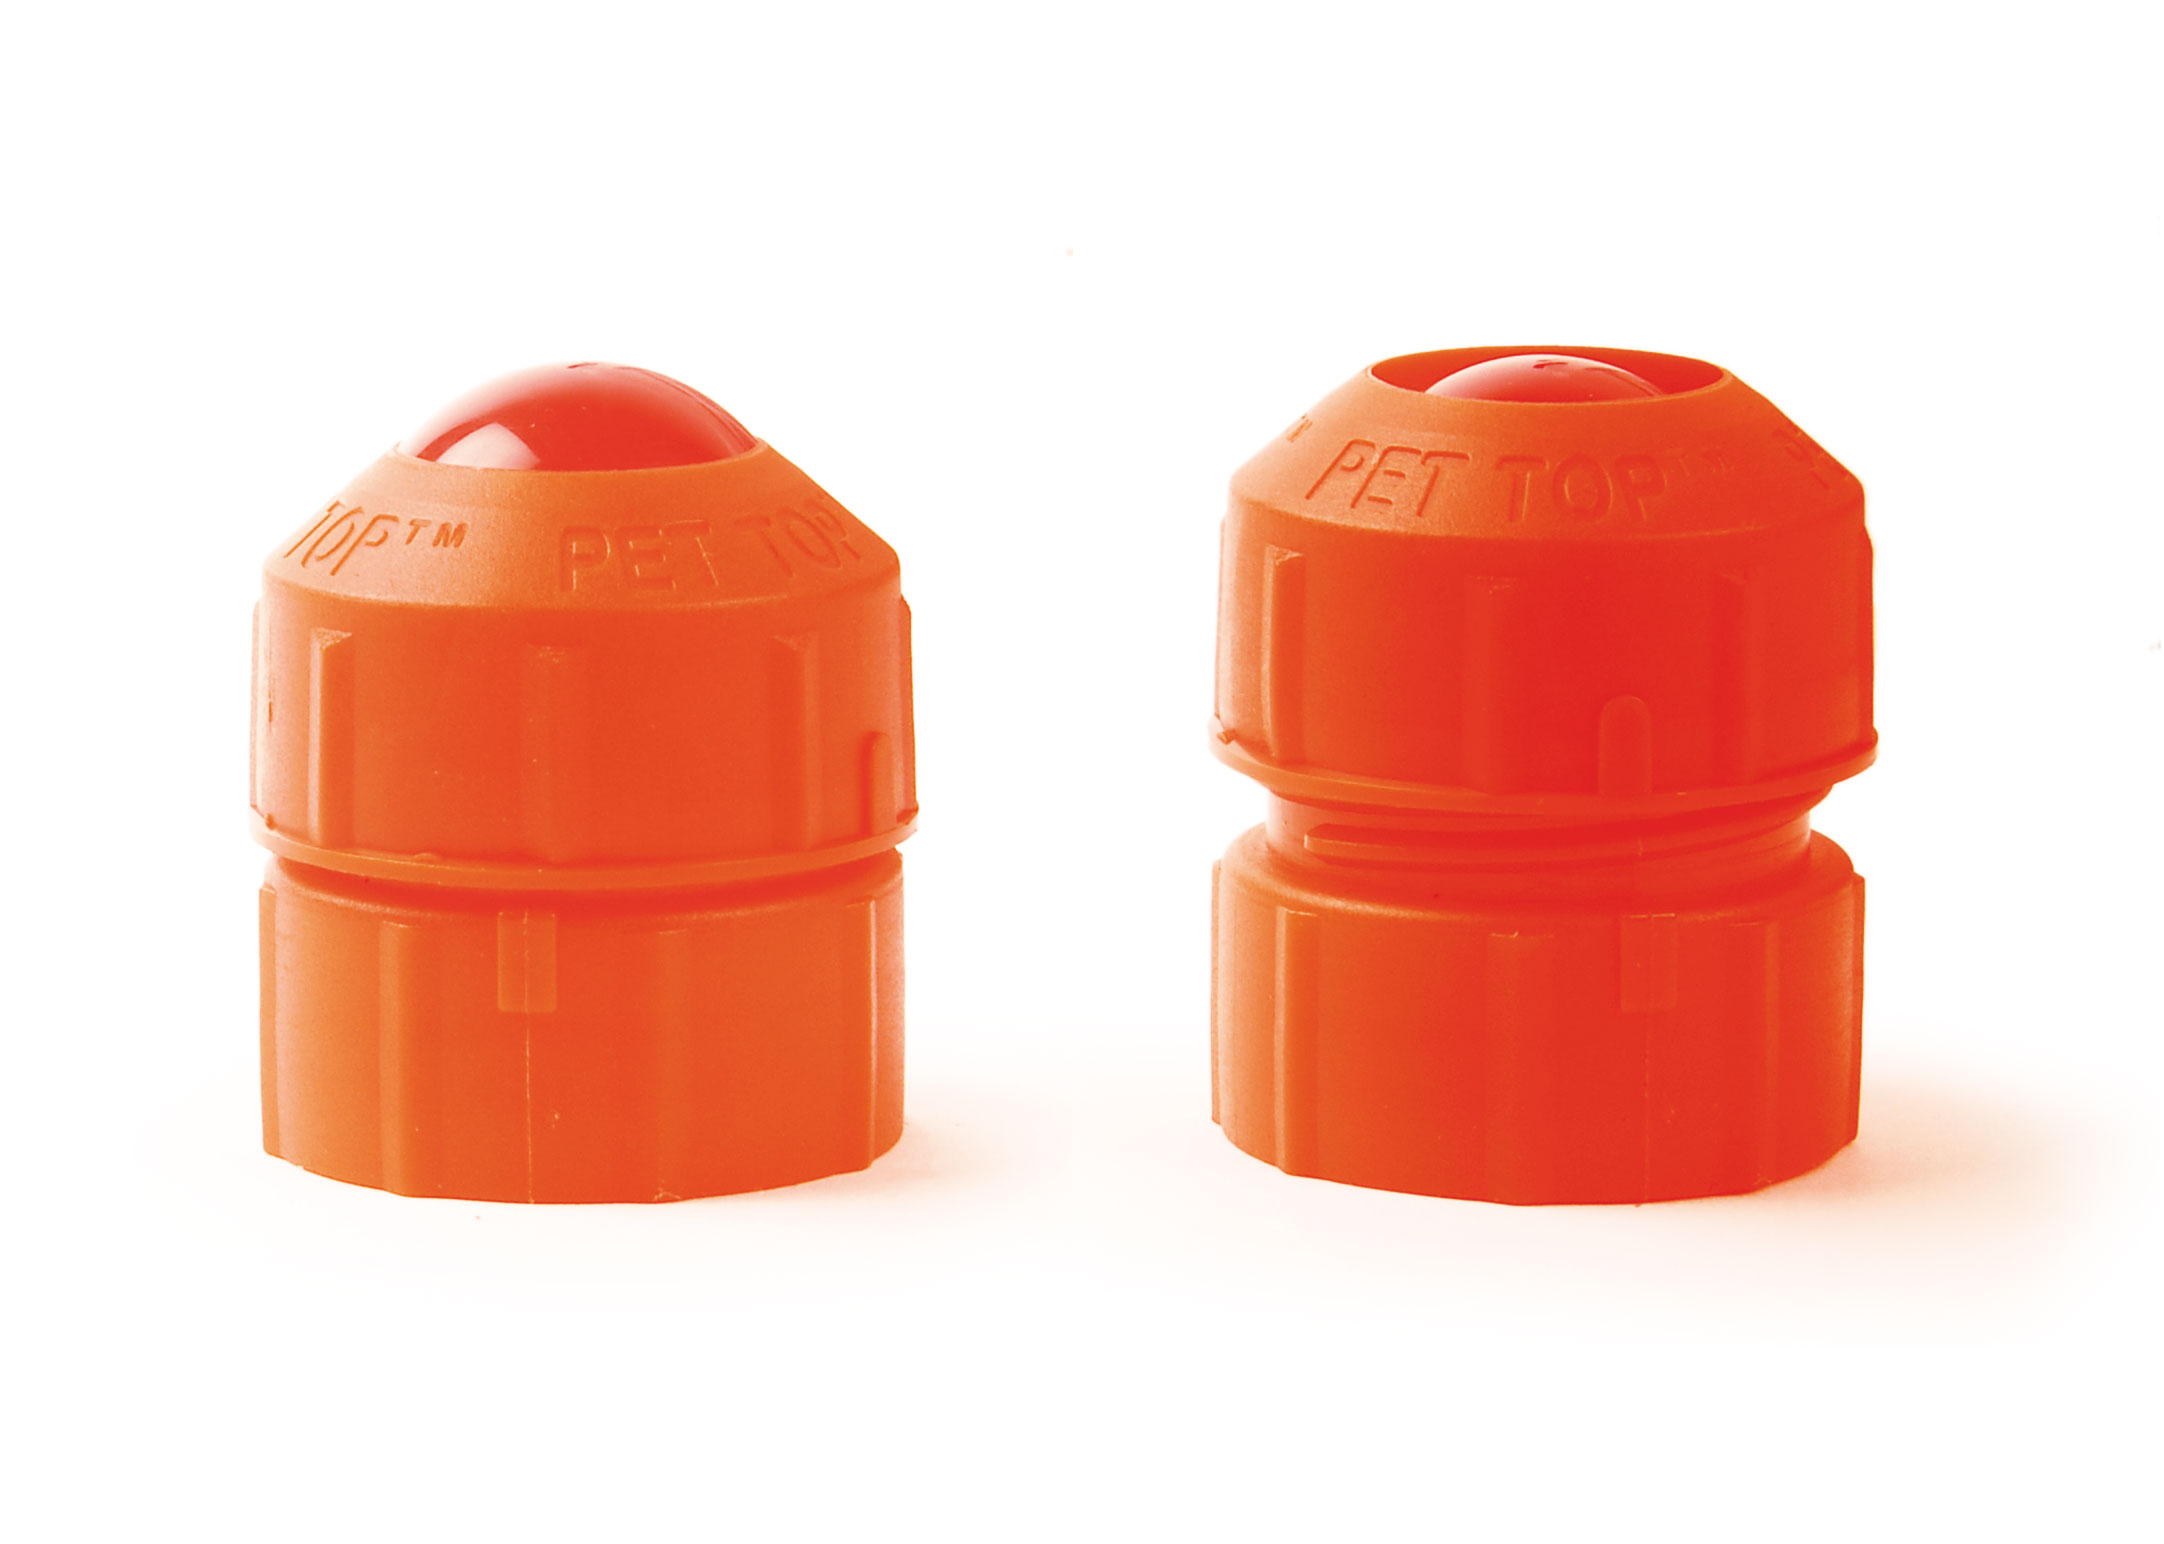 Pet Top Portable Drinking Device Bottle Top